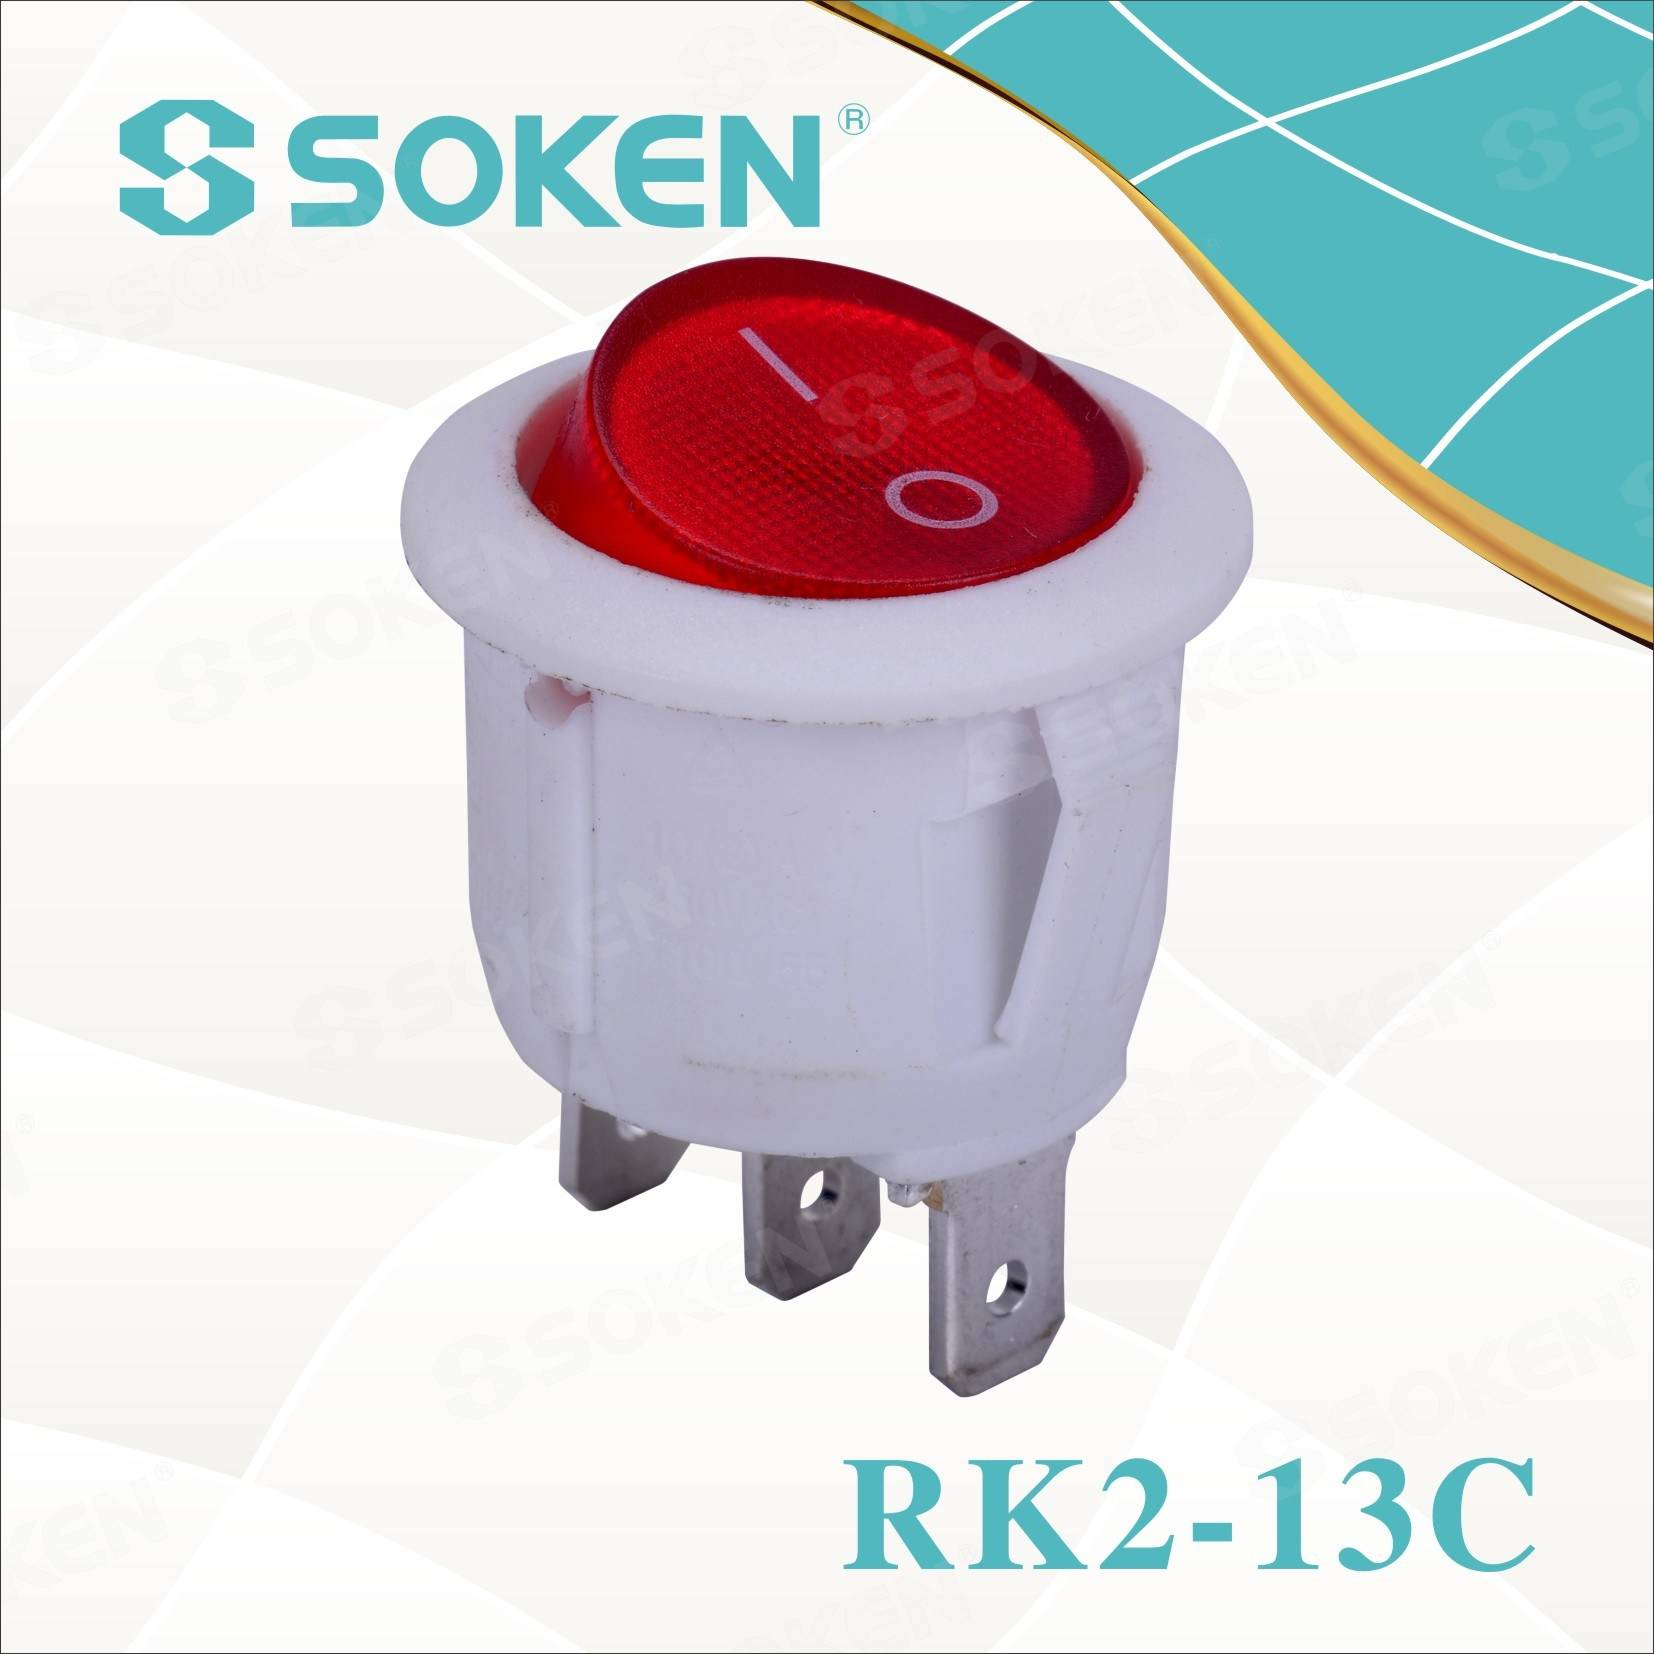 Soken Rk2-13c Round on off Rocker Switch